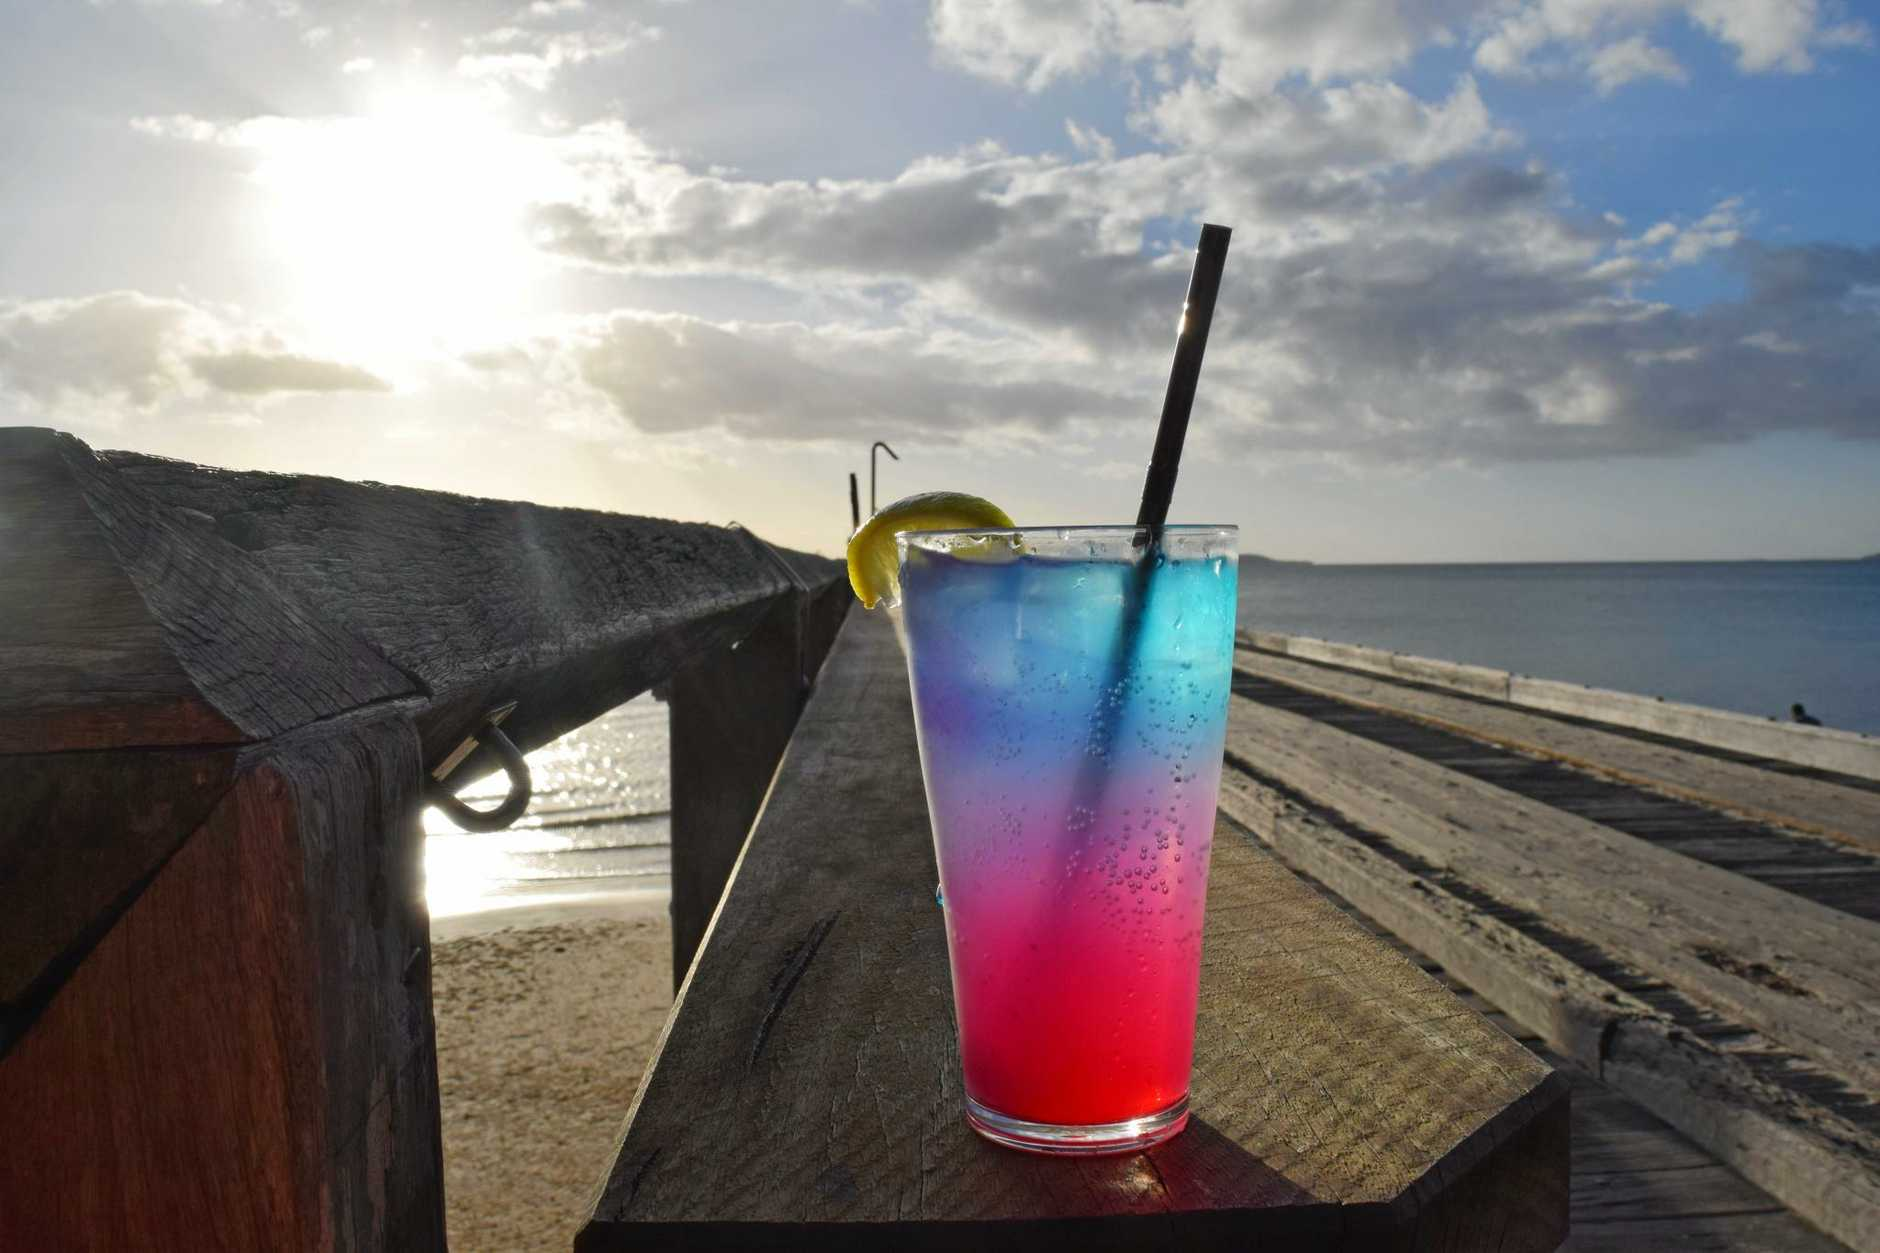 The violet sands  is one of the amazing cocktails on the island, served up at the Sunset Bar.